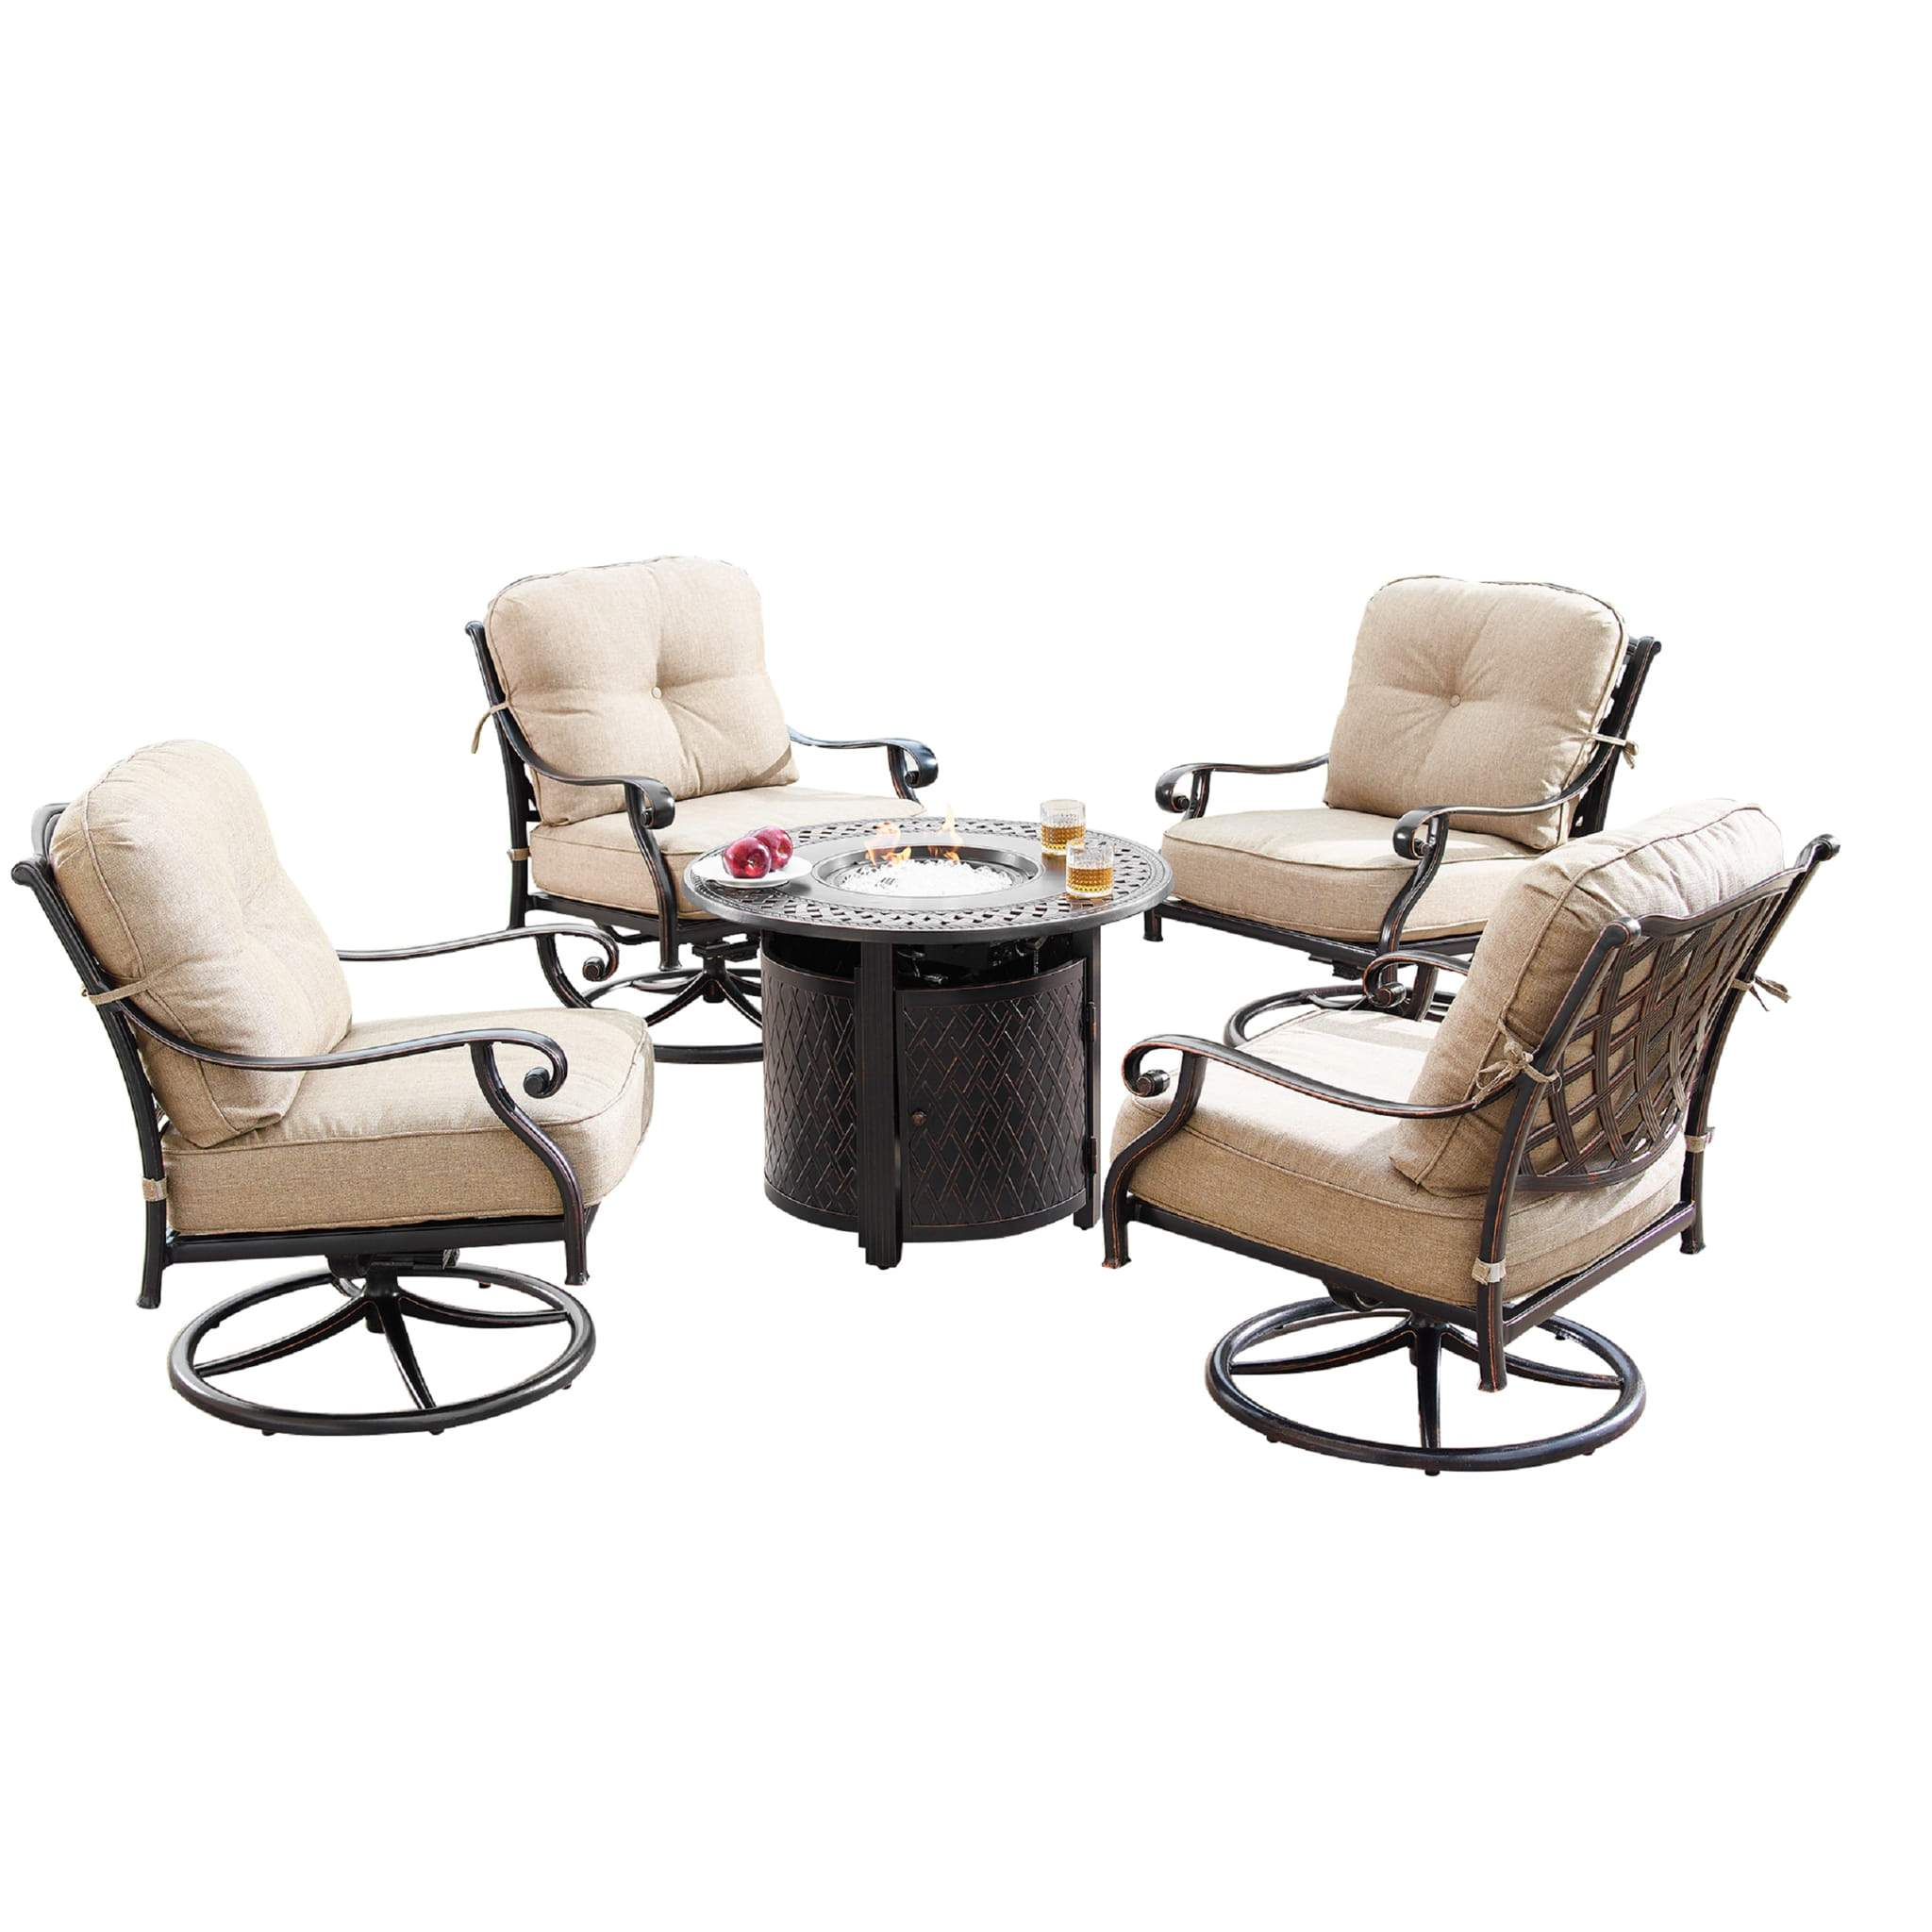 Oakland Living Finland-Ritz 5-Piece Outdoor Fire Table Set - FINLAND-RITZ-5PC-AC Outdoor Fire Table Sets Oakland Living